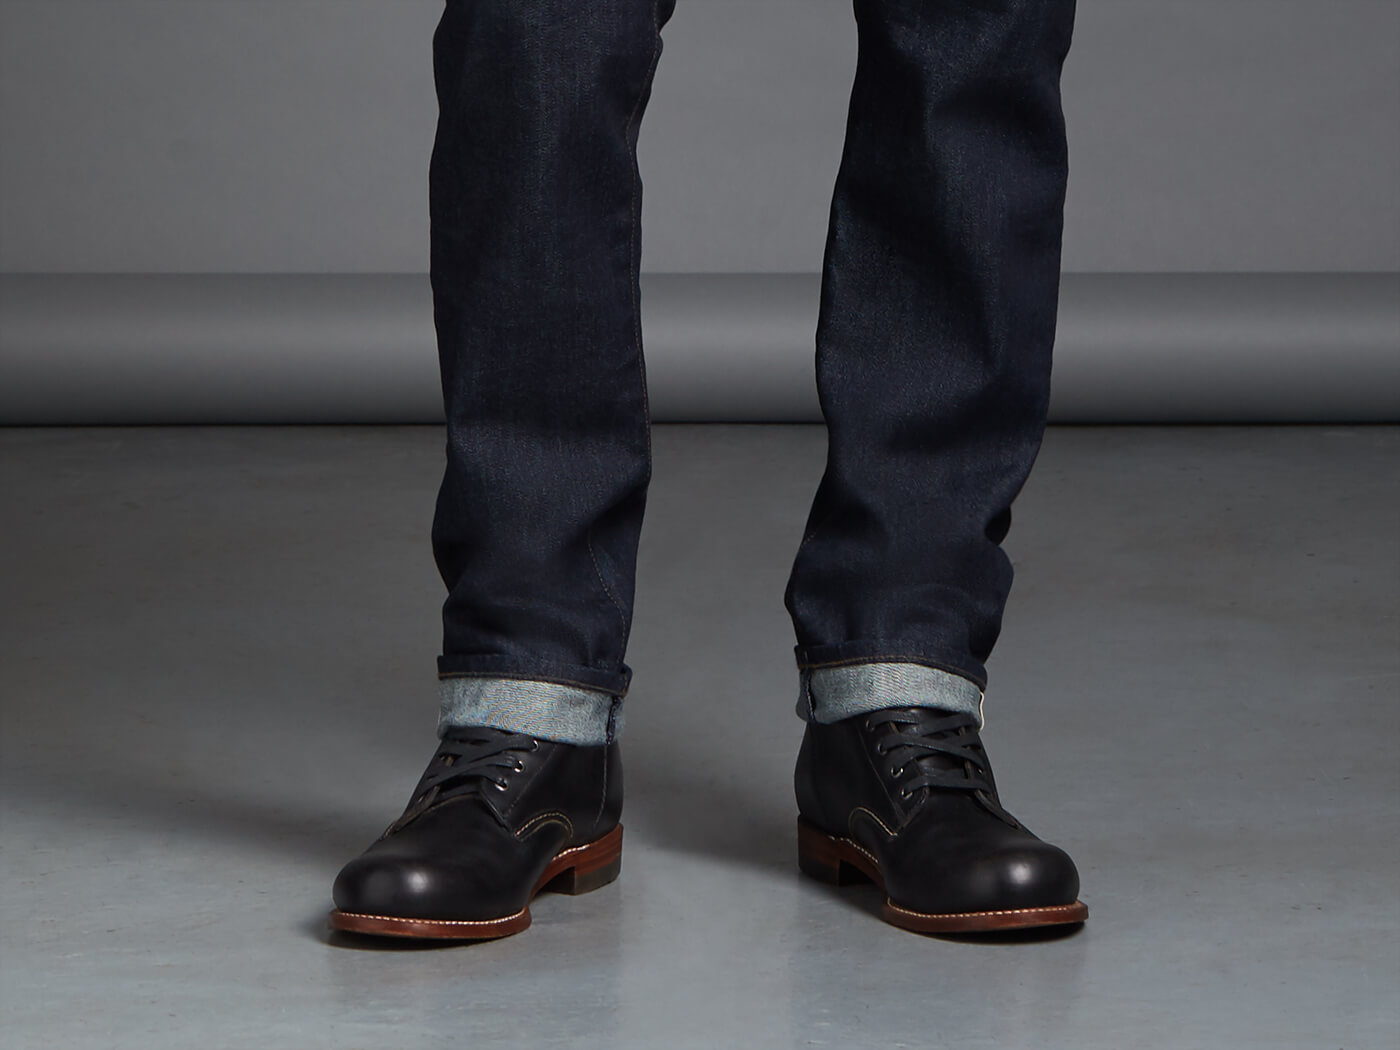 To avoid that, pair your black jeans with brown shoes. If you do go with black shoes, you have more freedom with your upper half. Ankle boots, from brogues to Chelseas are a fantastic option.